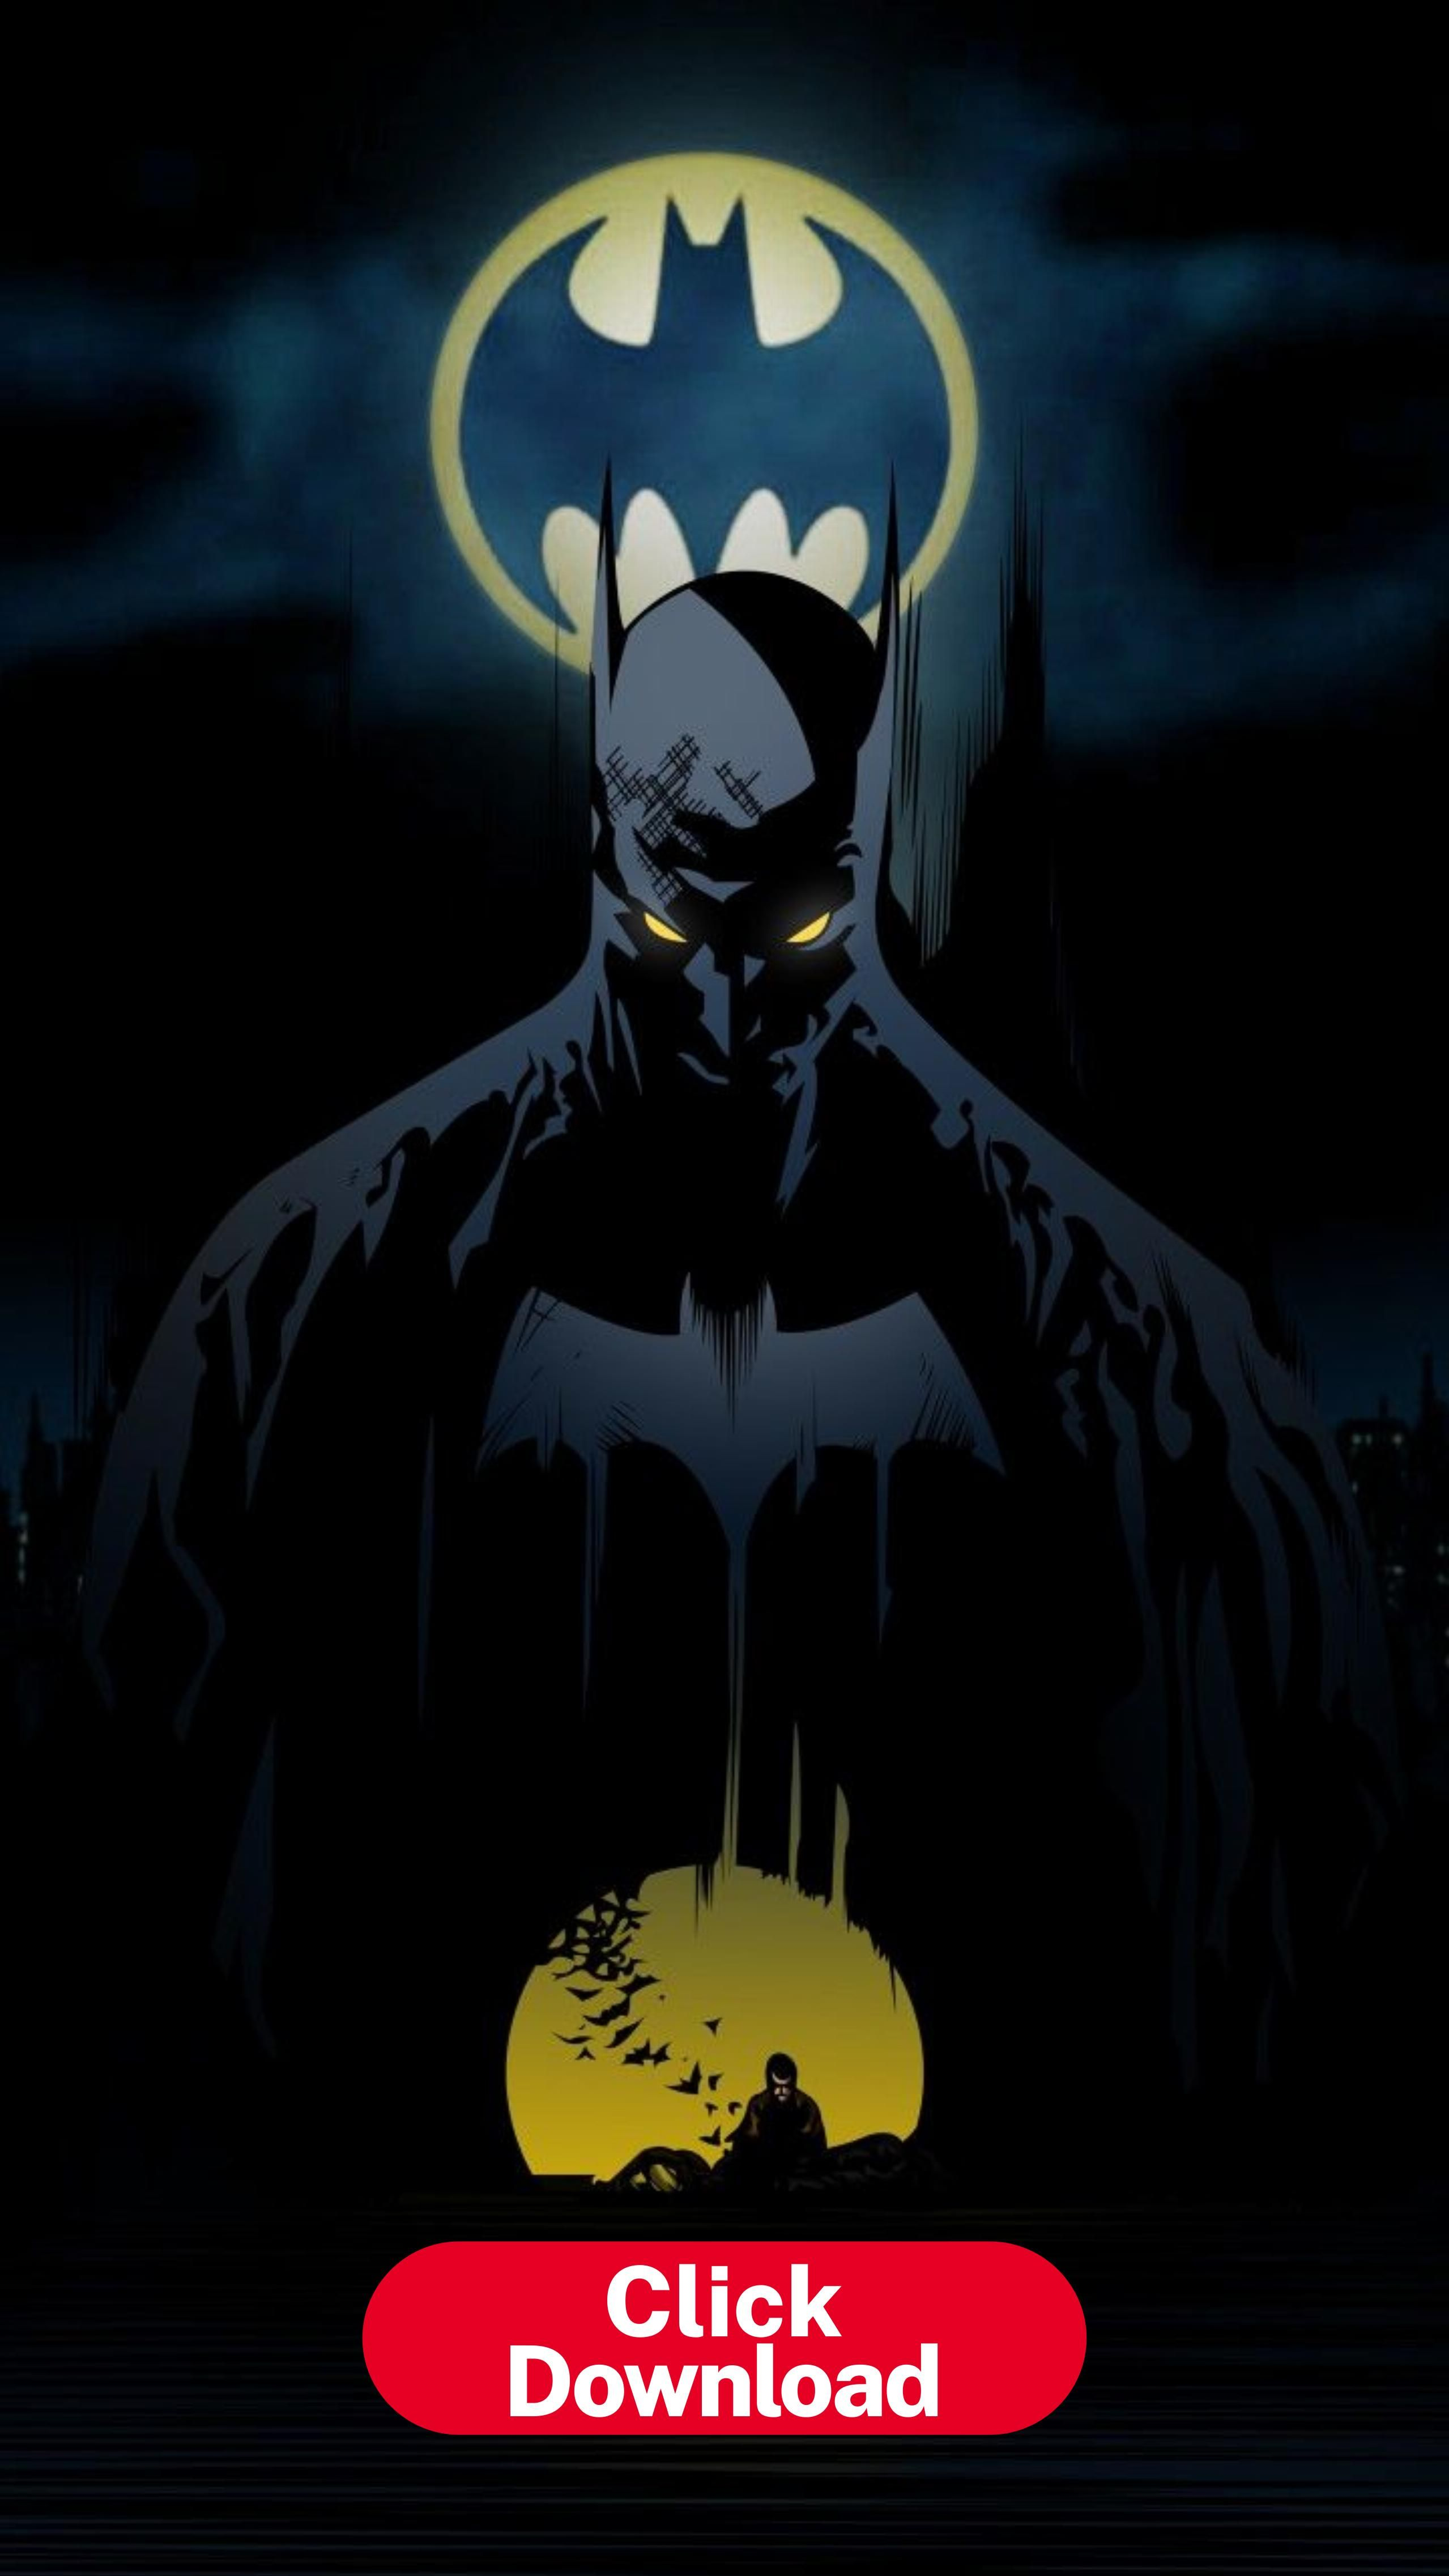 Pin by Sandman on Batman (With images) Phone wallpaper